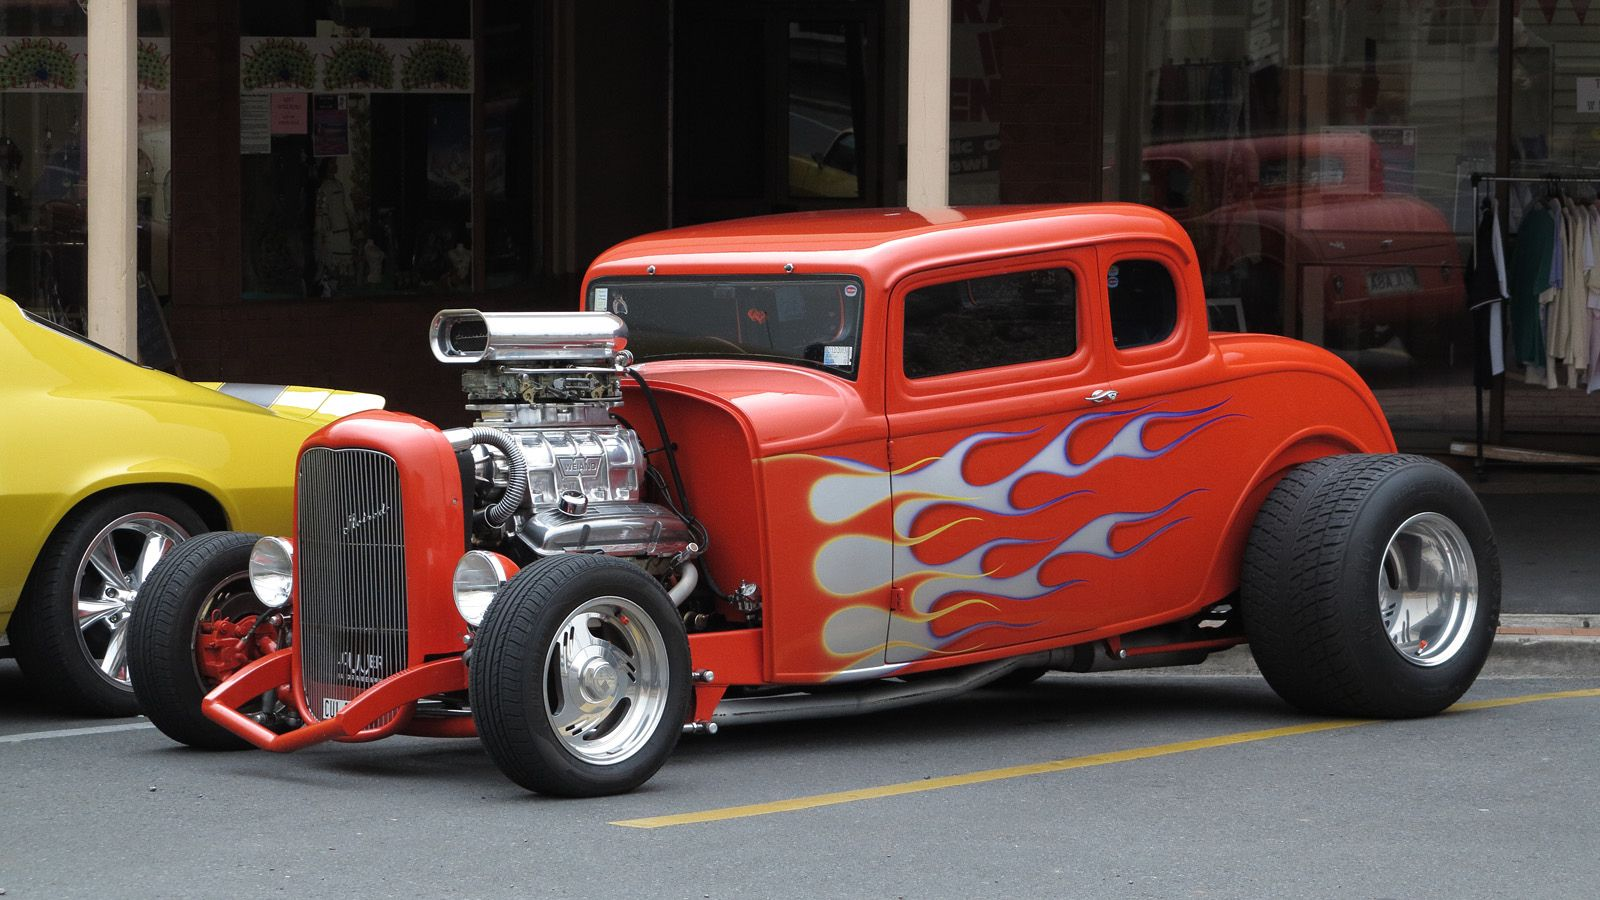 1932 Ford Coupe Hot Rods Cars Muscle Classic Cars Trucks Hot Rods Hot Rods Cars